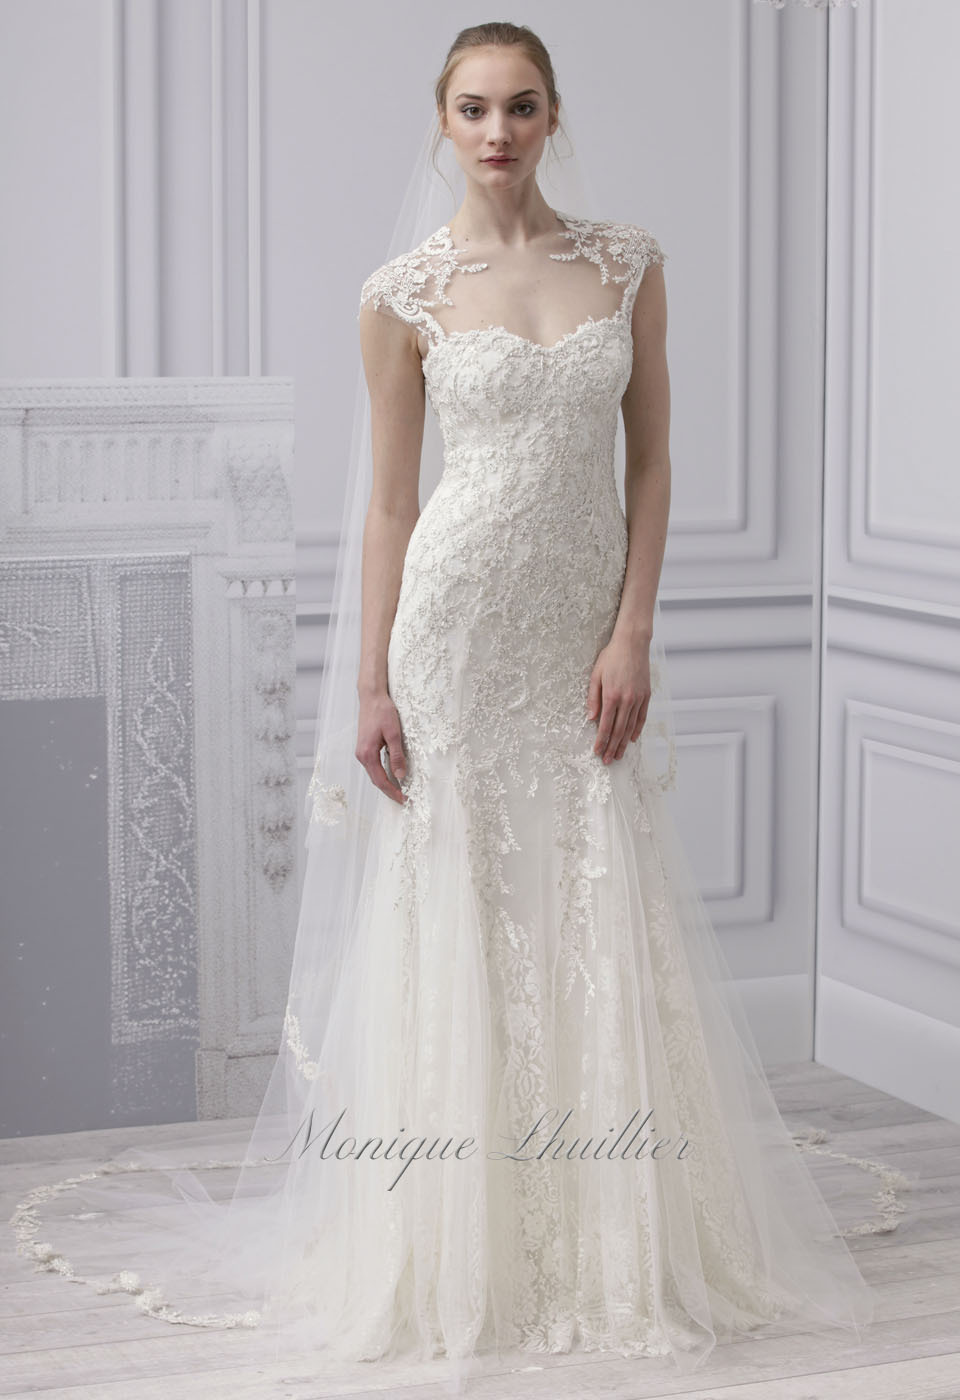 Bride Chic 5 Trends for Fall 2014 Modern Lace Monique Lhuillier